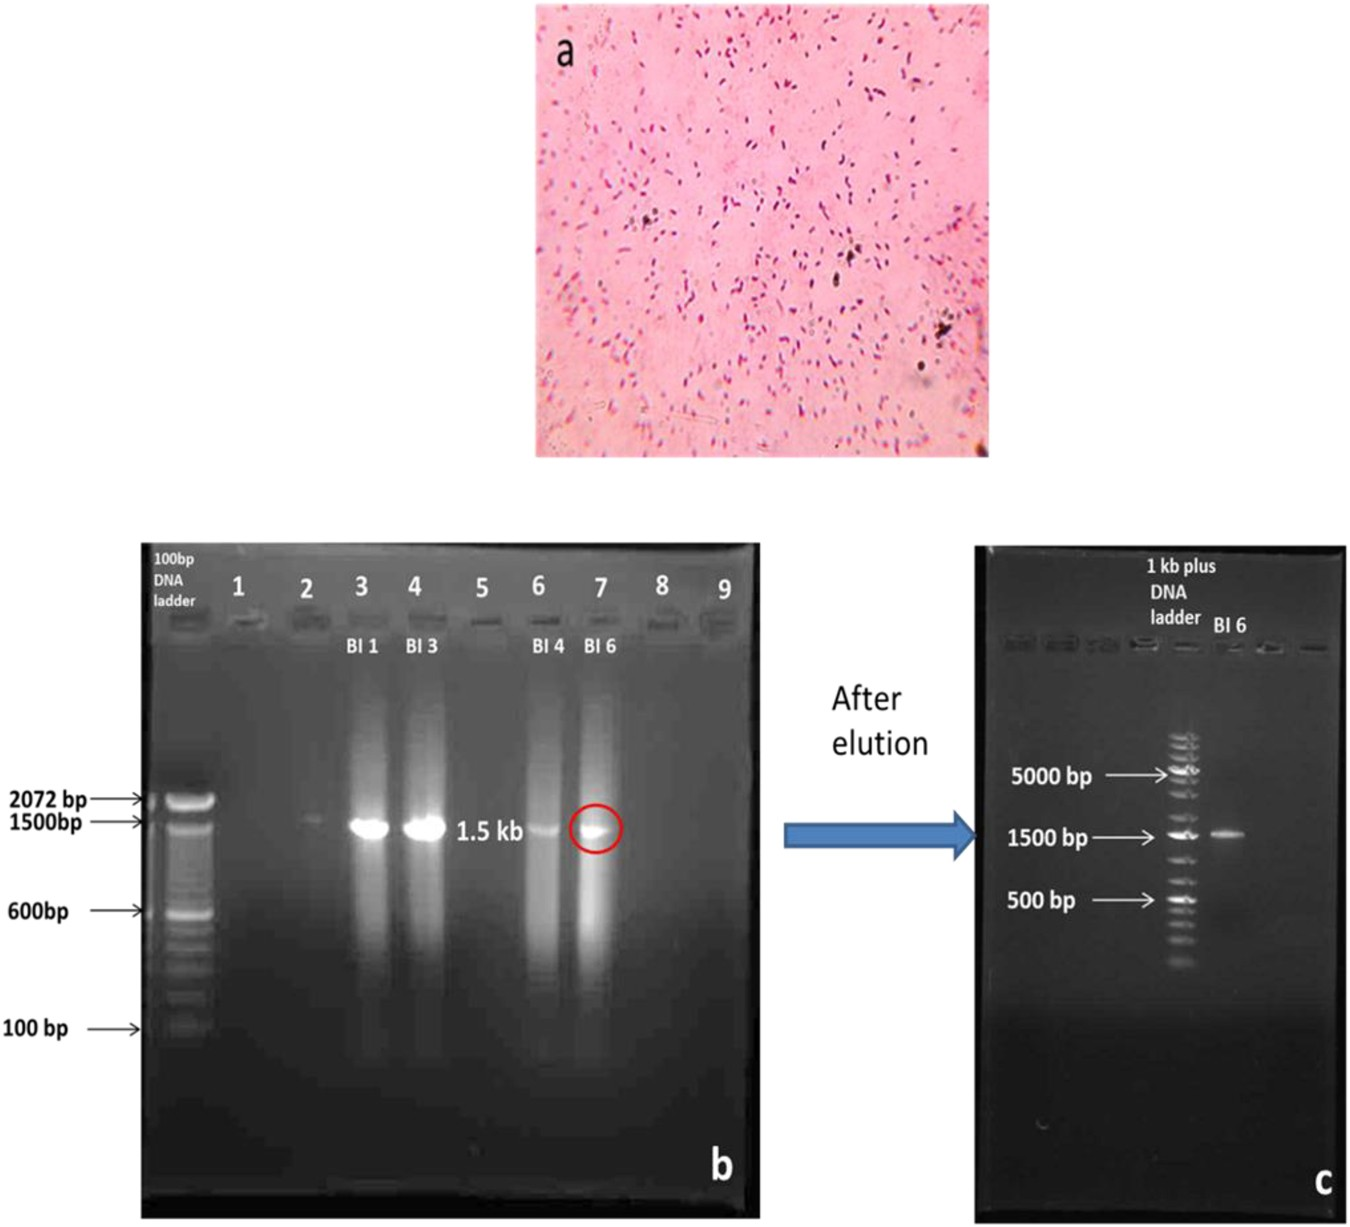 Potential Application Of Saccharomyces Cerevisiae And Rhizobium Measurement Electrical Quantities With A Cro Immobilized In Multi Walled Carbon Nanotubes To Adsorb Hexavalent Chromium Scientific